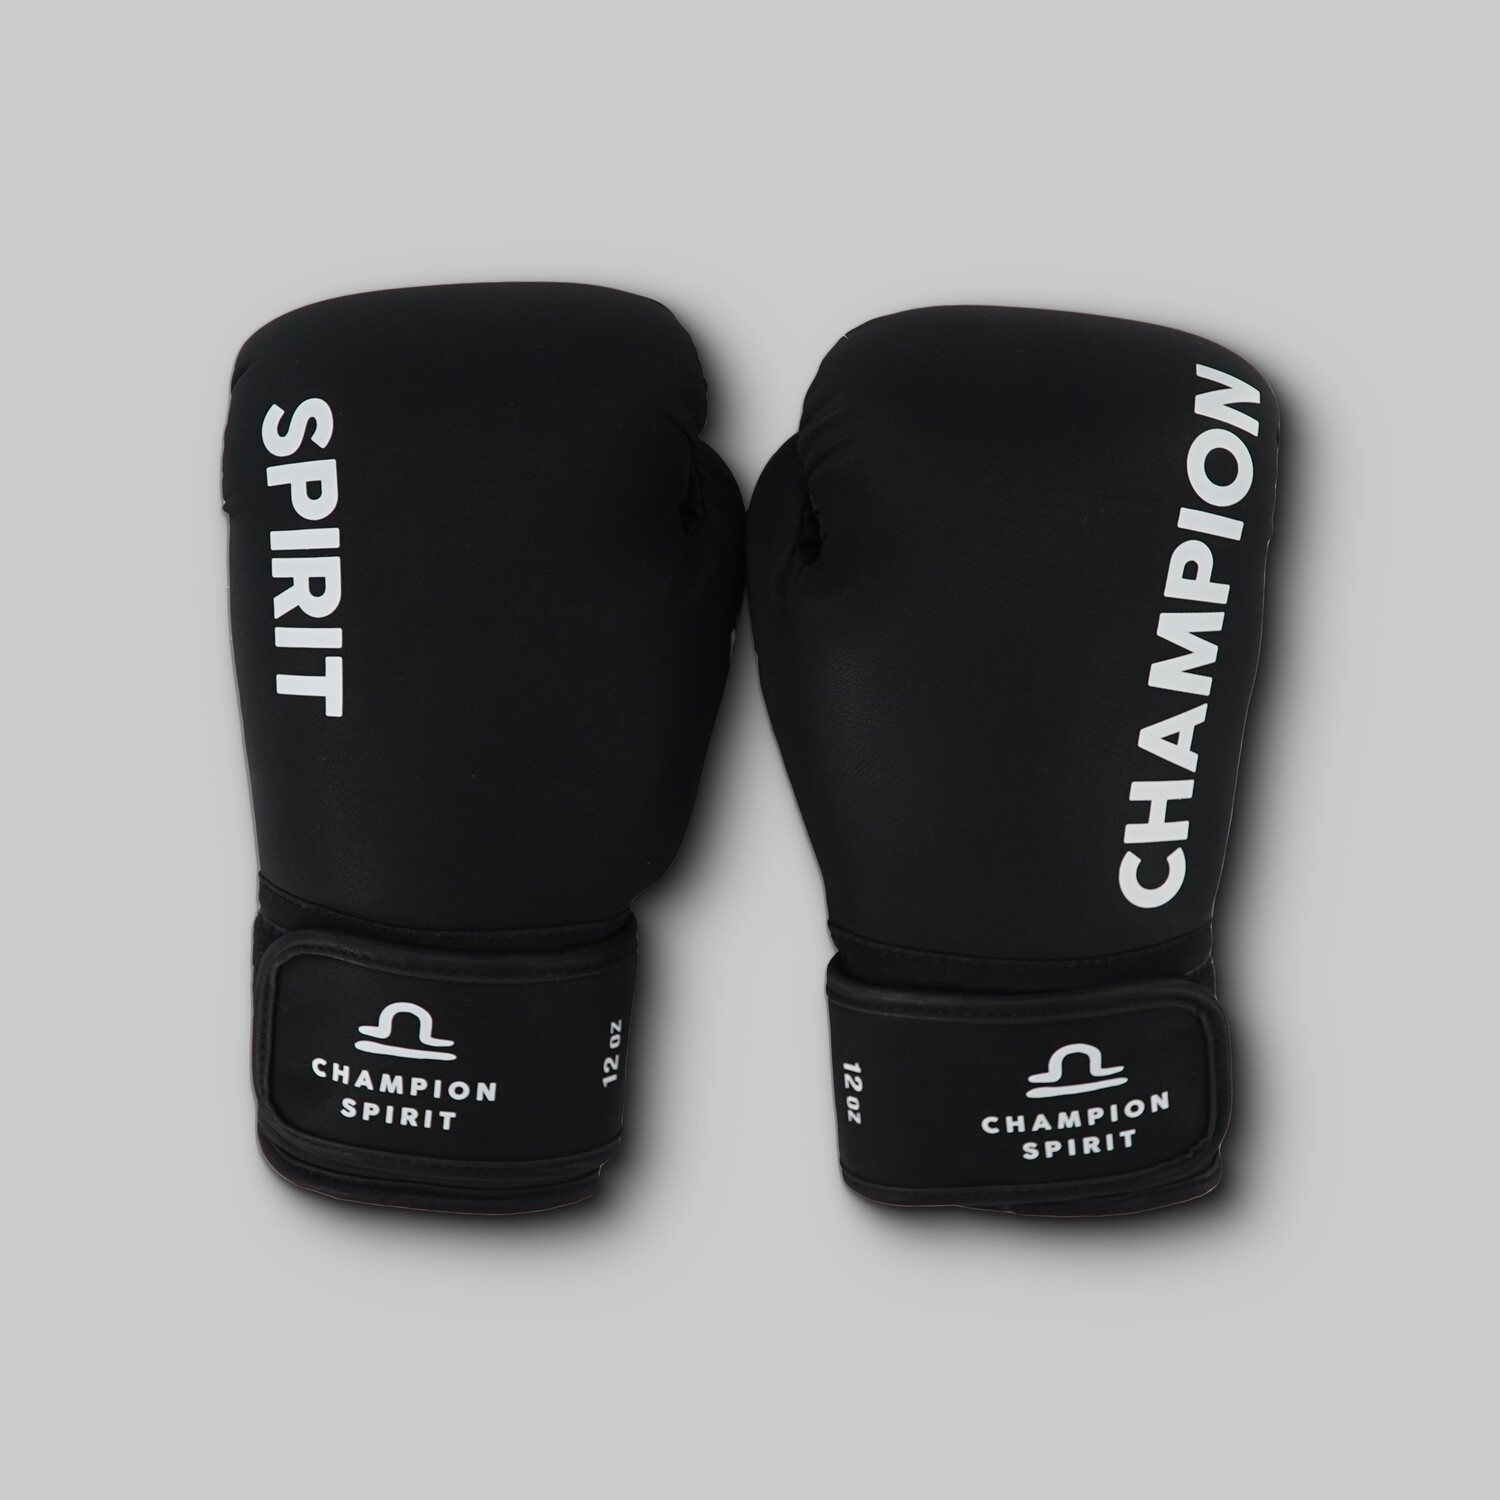 Gant de boxe Fit - Adultes